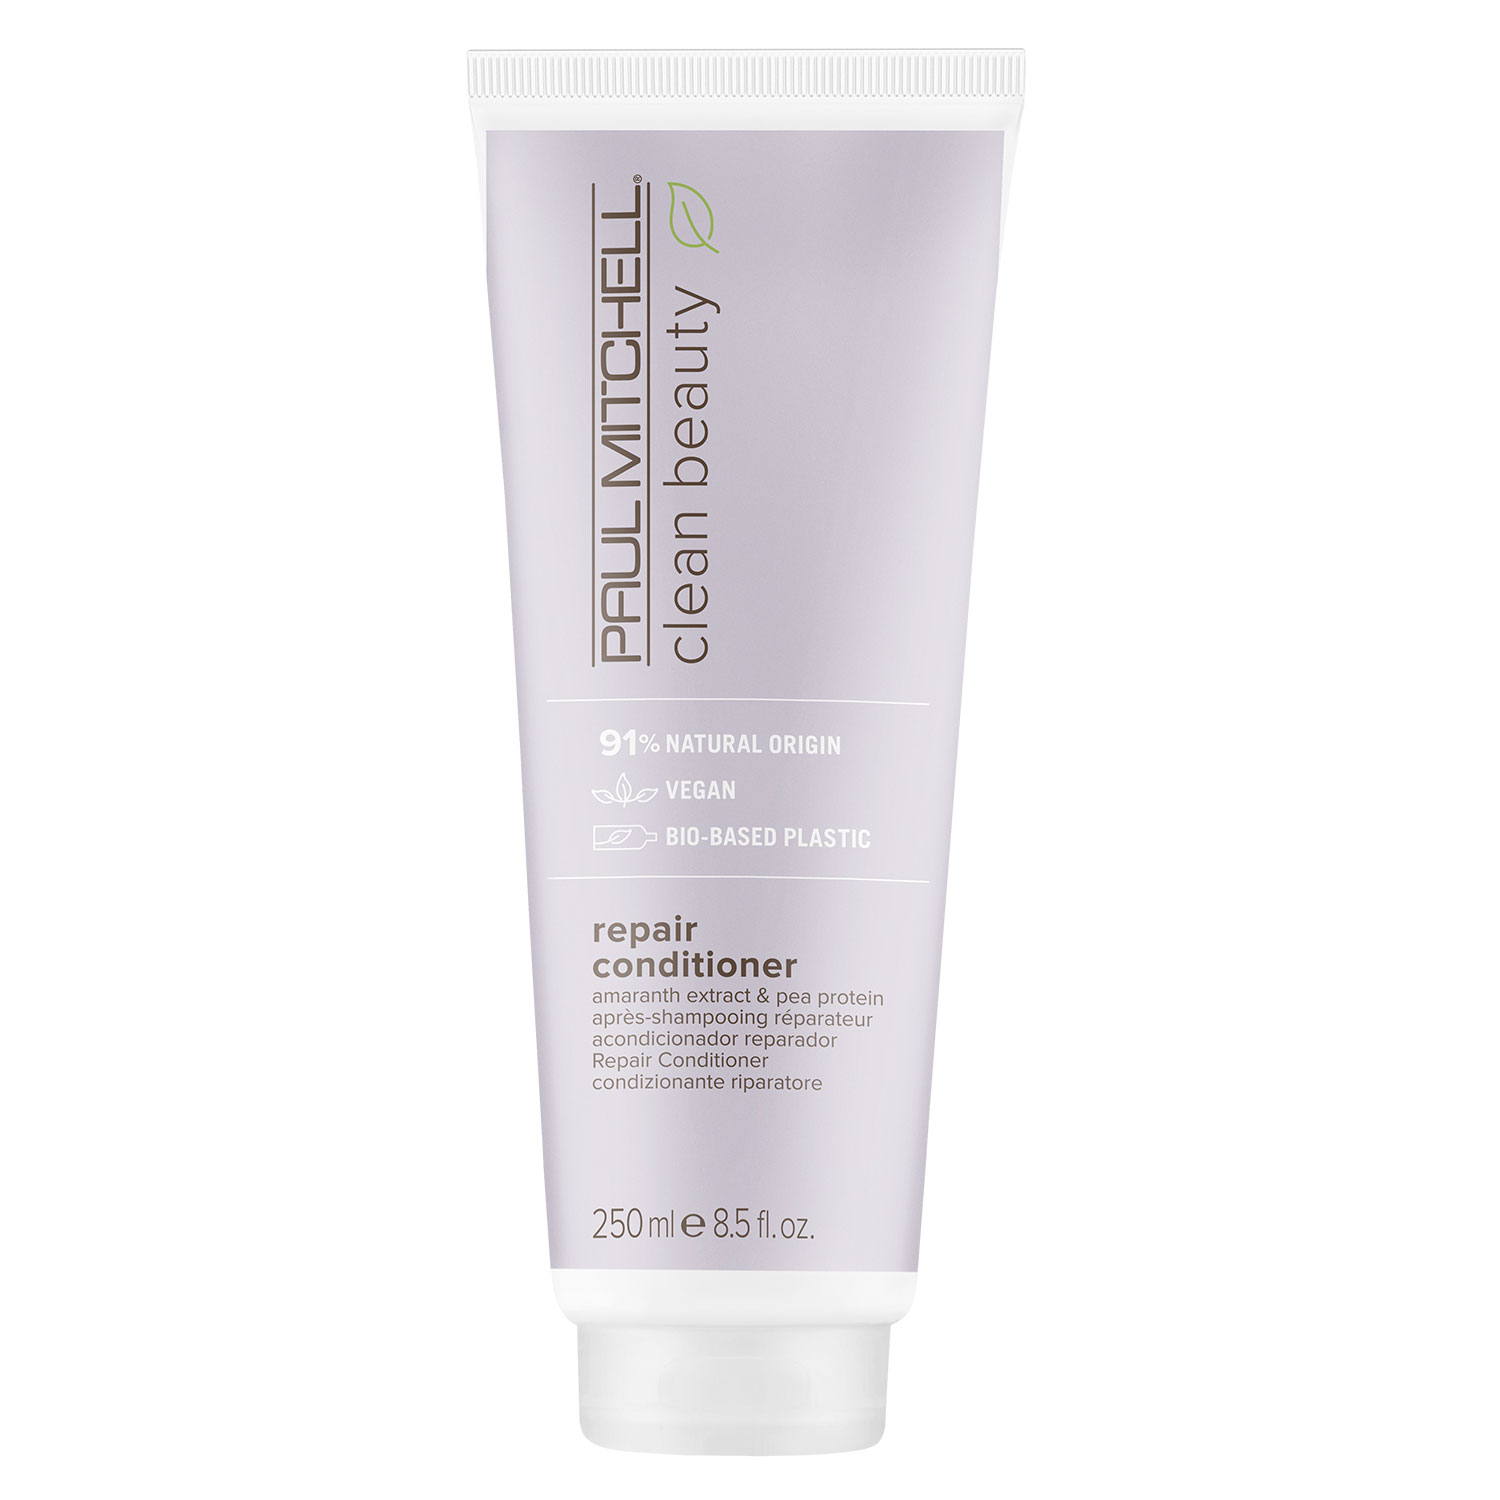 Paul Mitchell Clean Beauty - Repair Conditioner